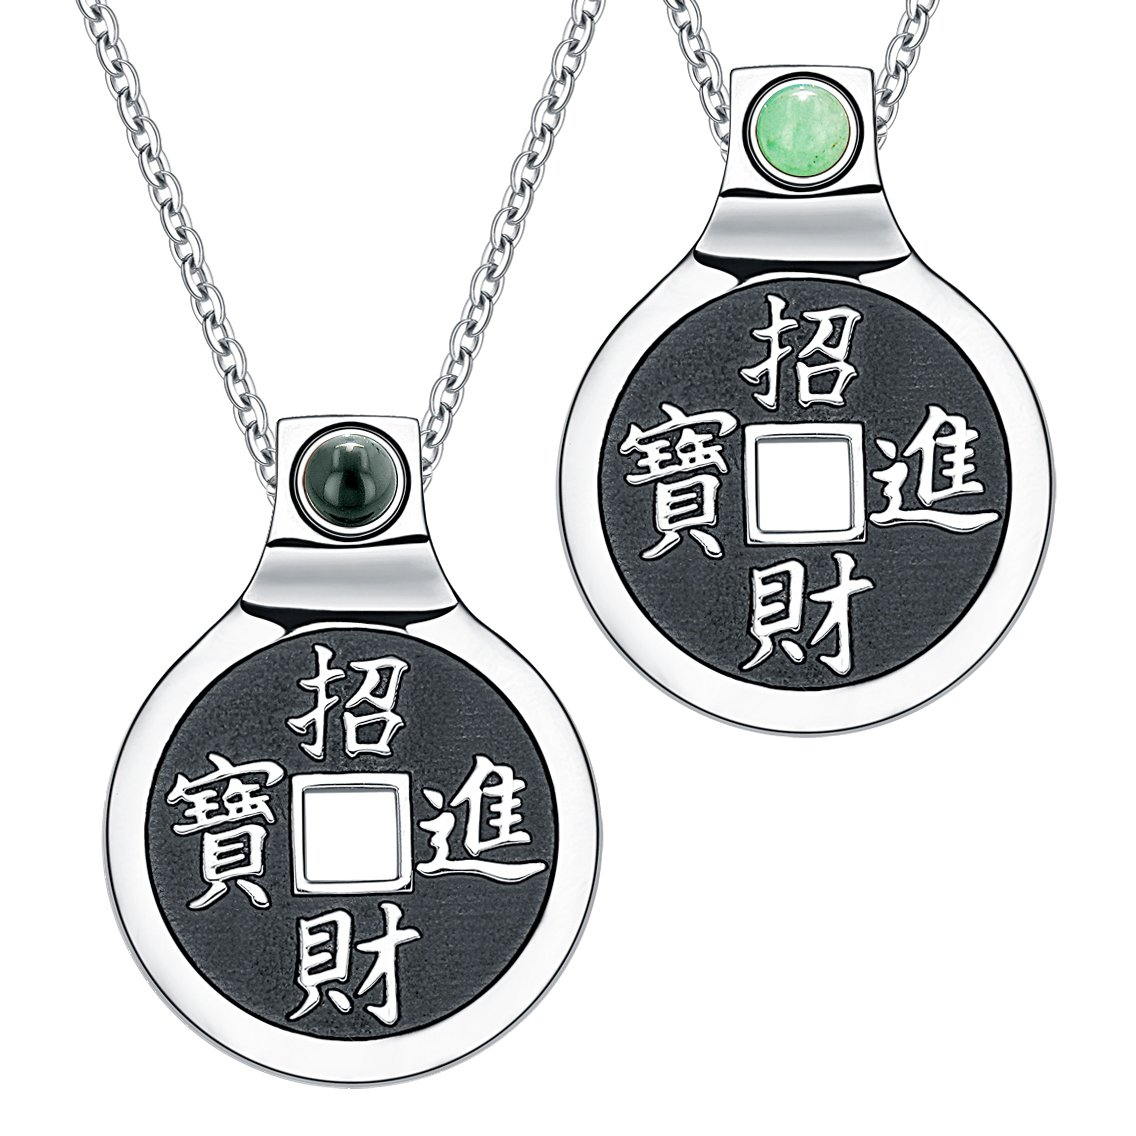 Yin Yang Amulets Love Couple Feng Shui Coins Kanji Magic Green Quartz Simulated Onyx Necklaces